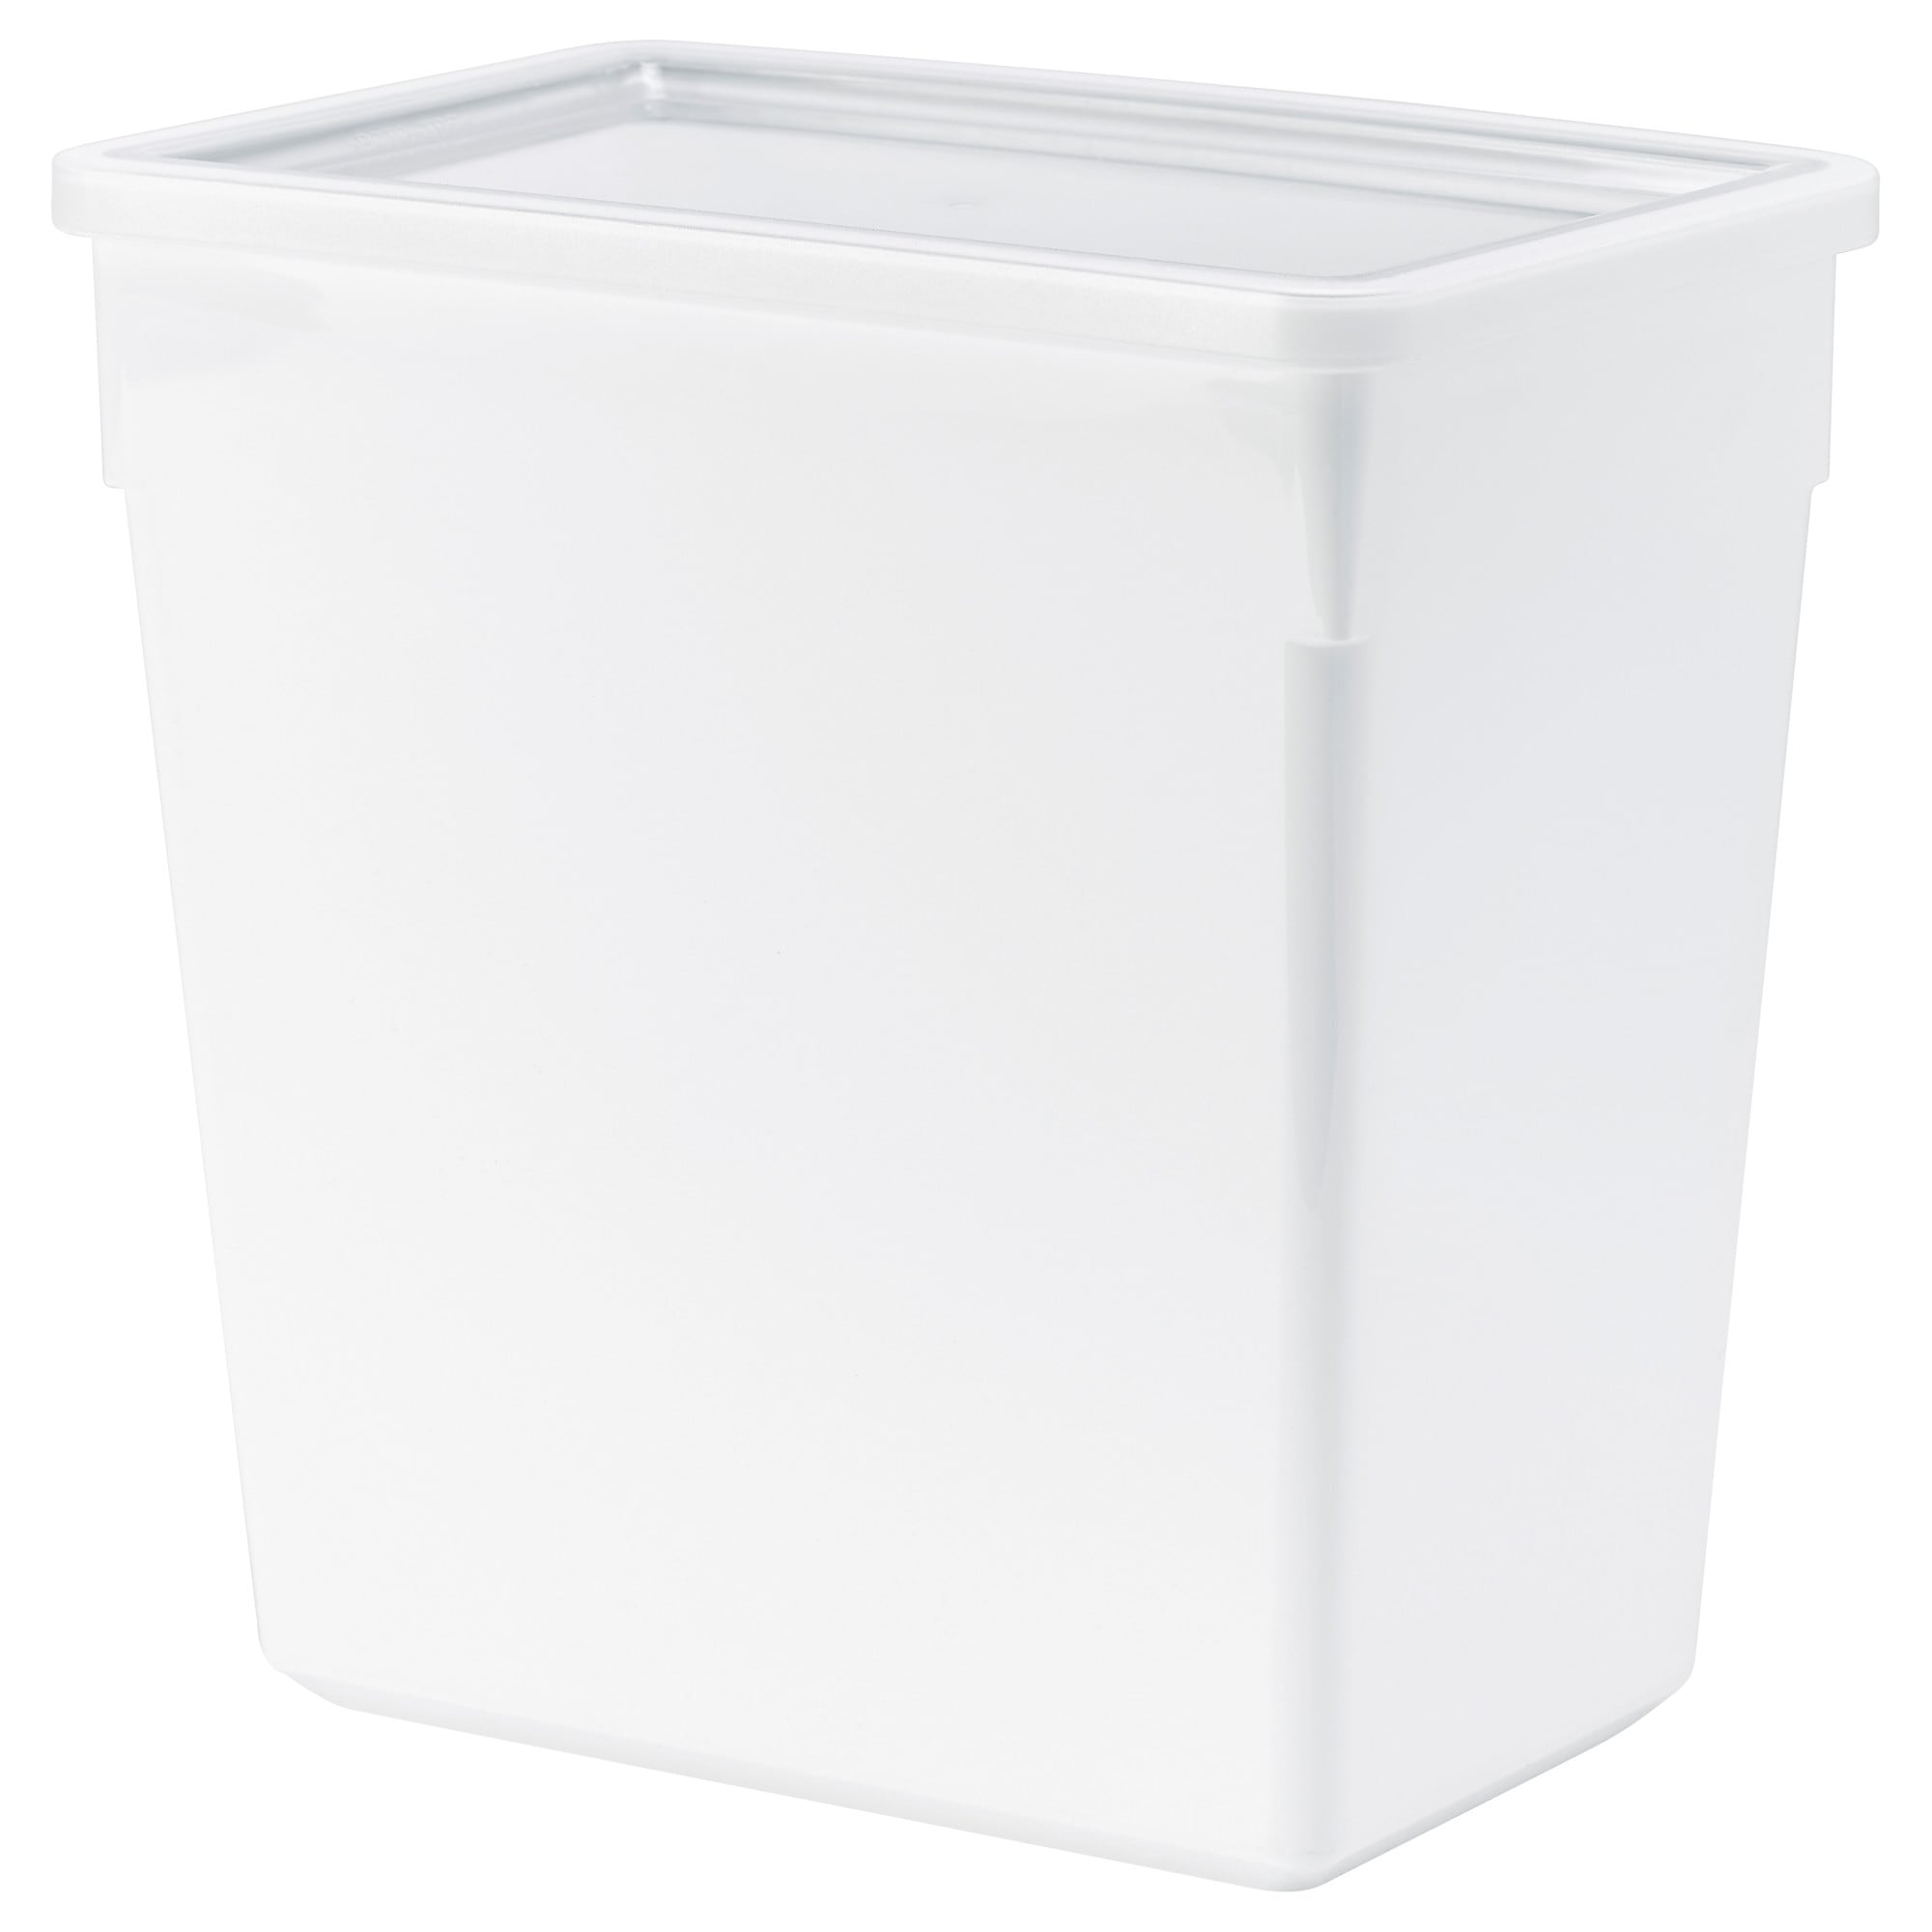 TILLSLUTA dry food jar with lid, white Length: 9